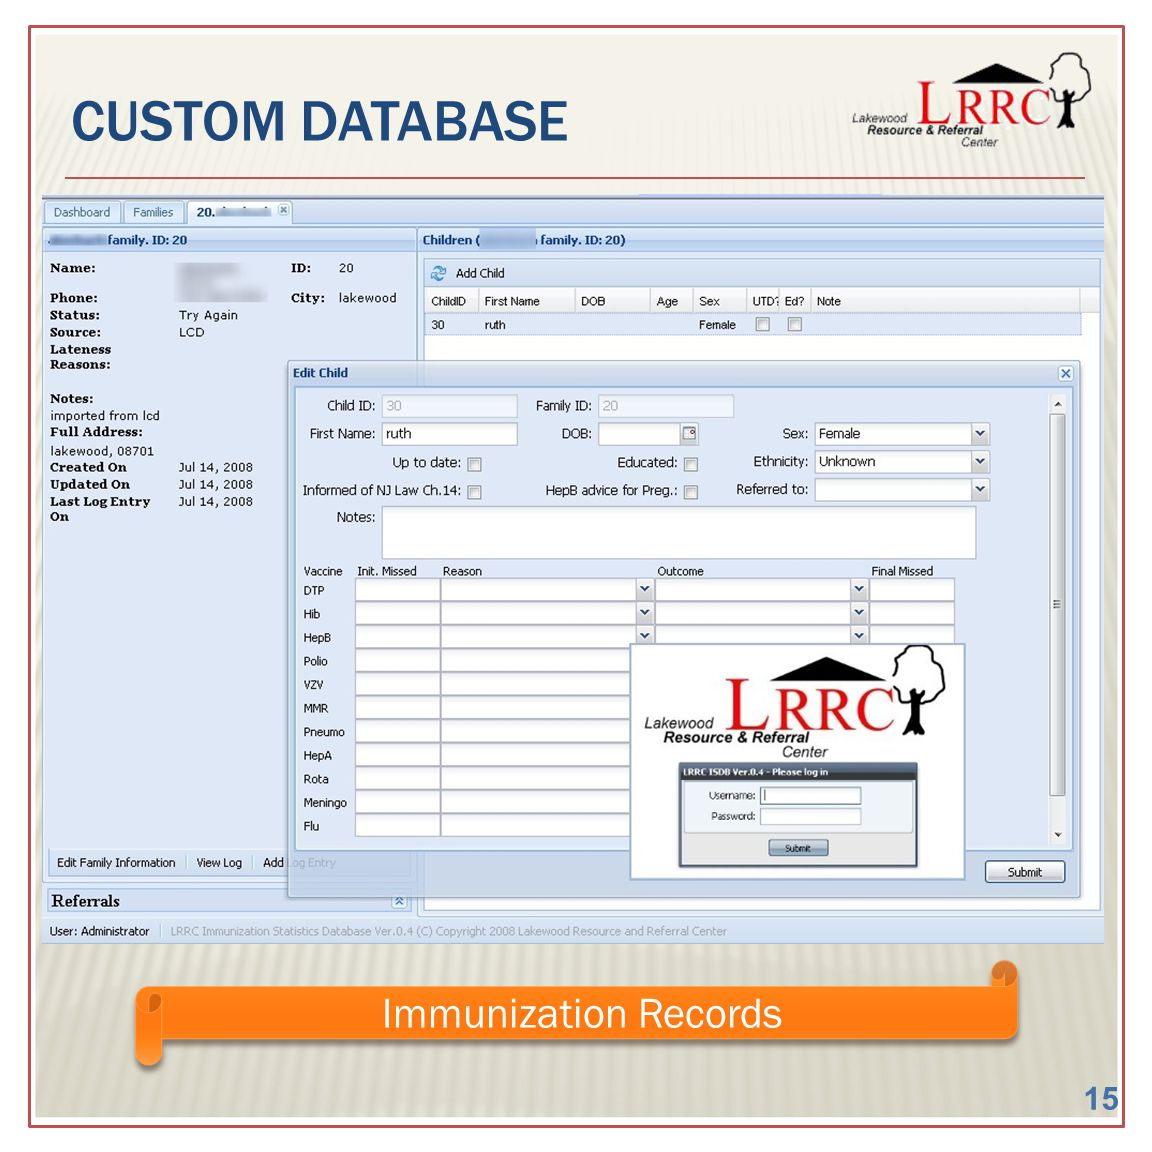 CUSTOM DATABASE Immunization Records 15